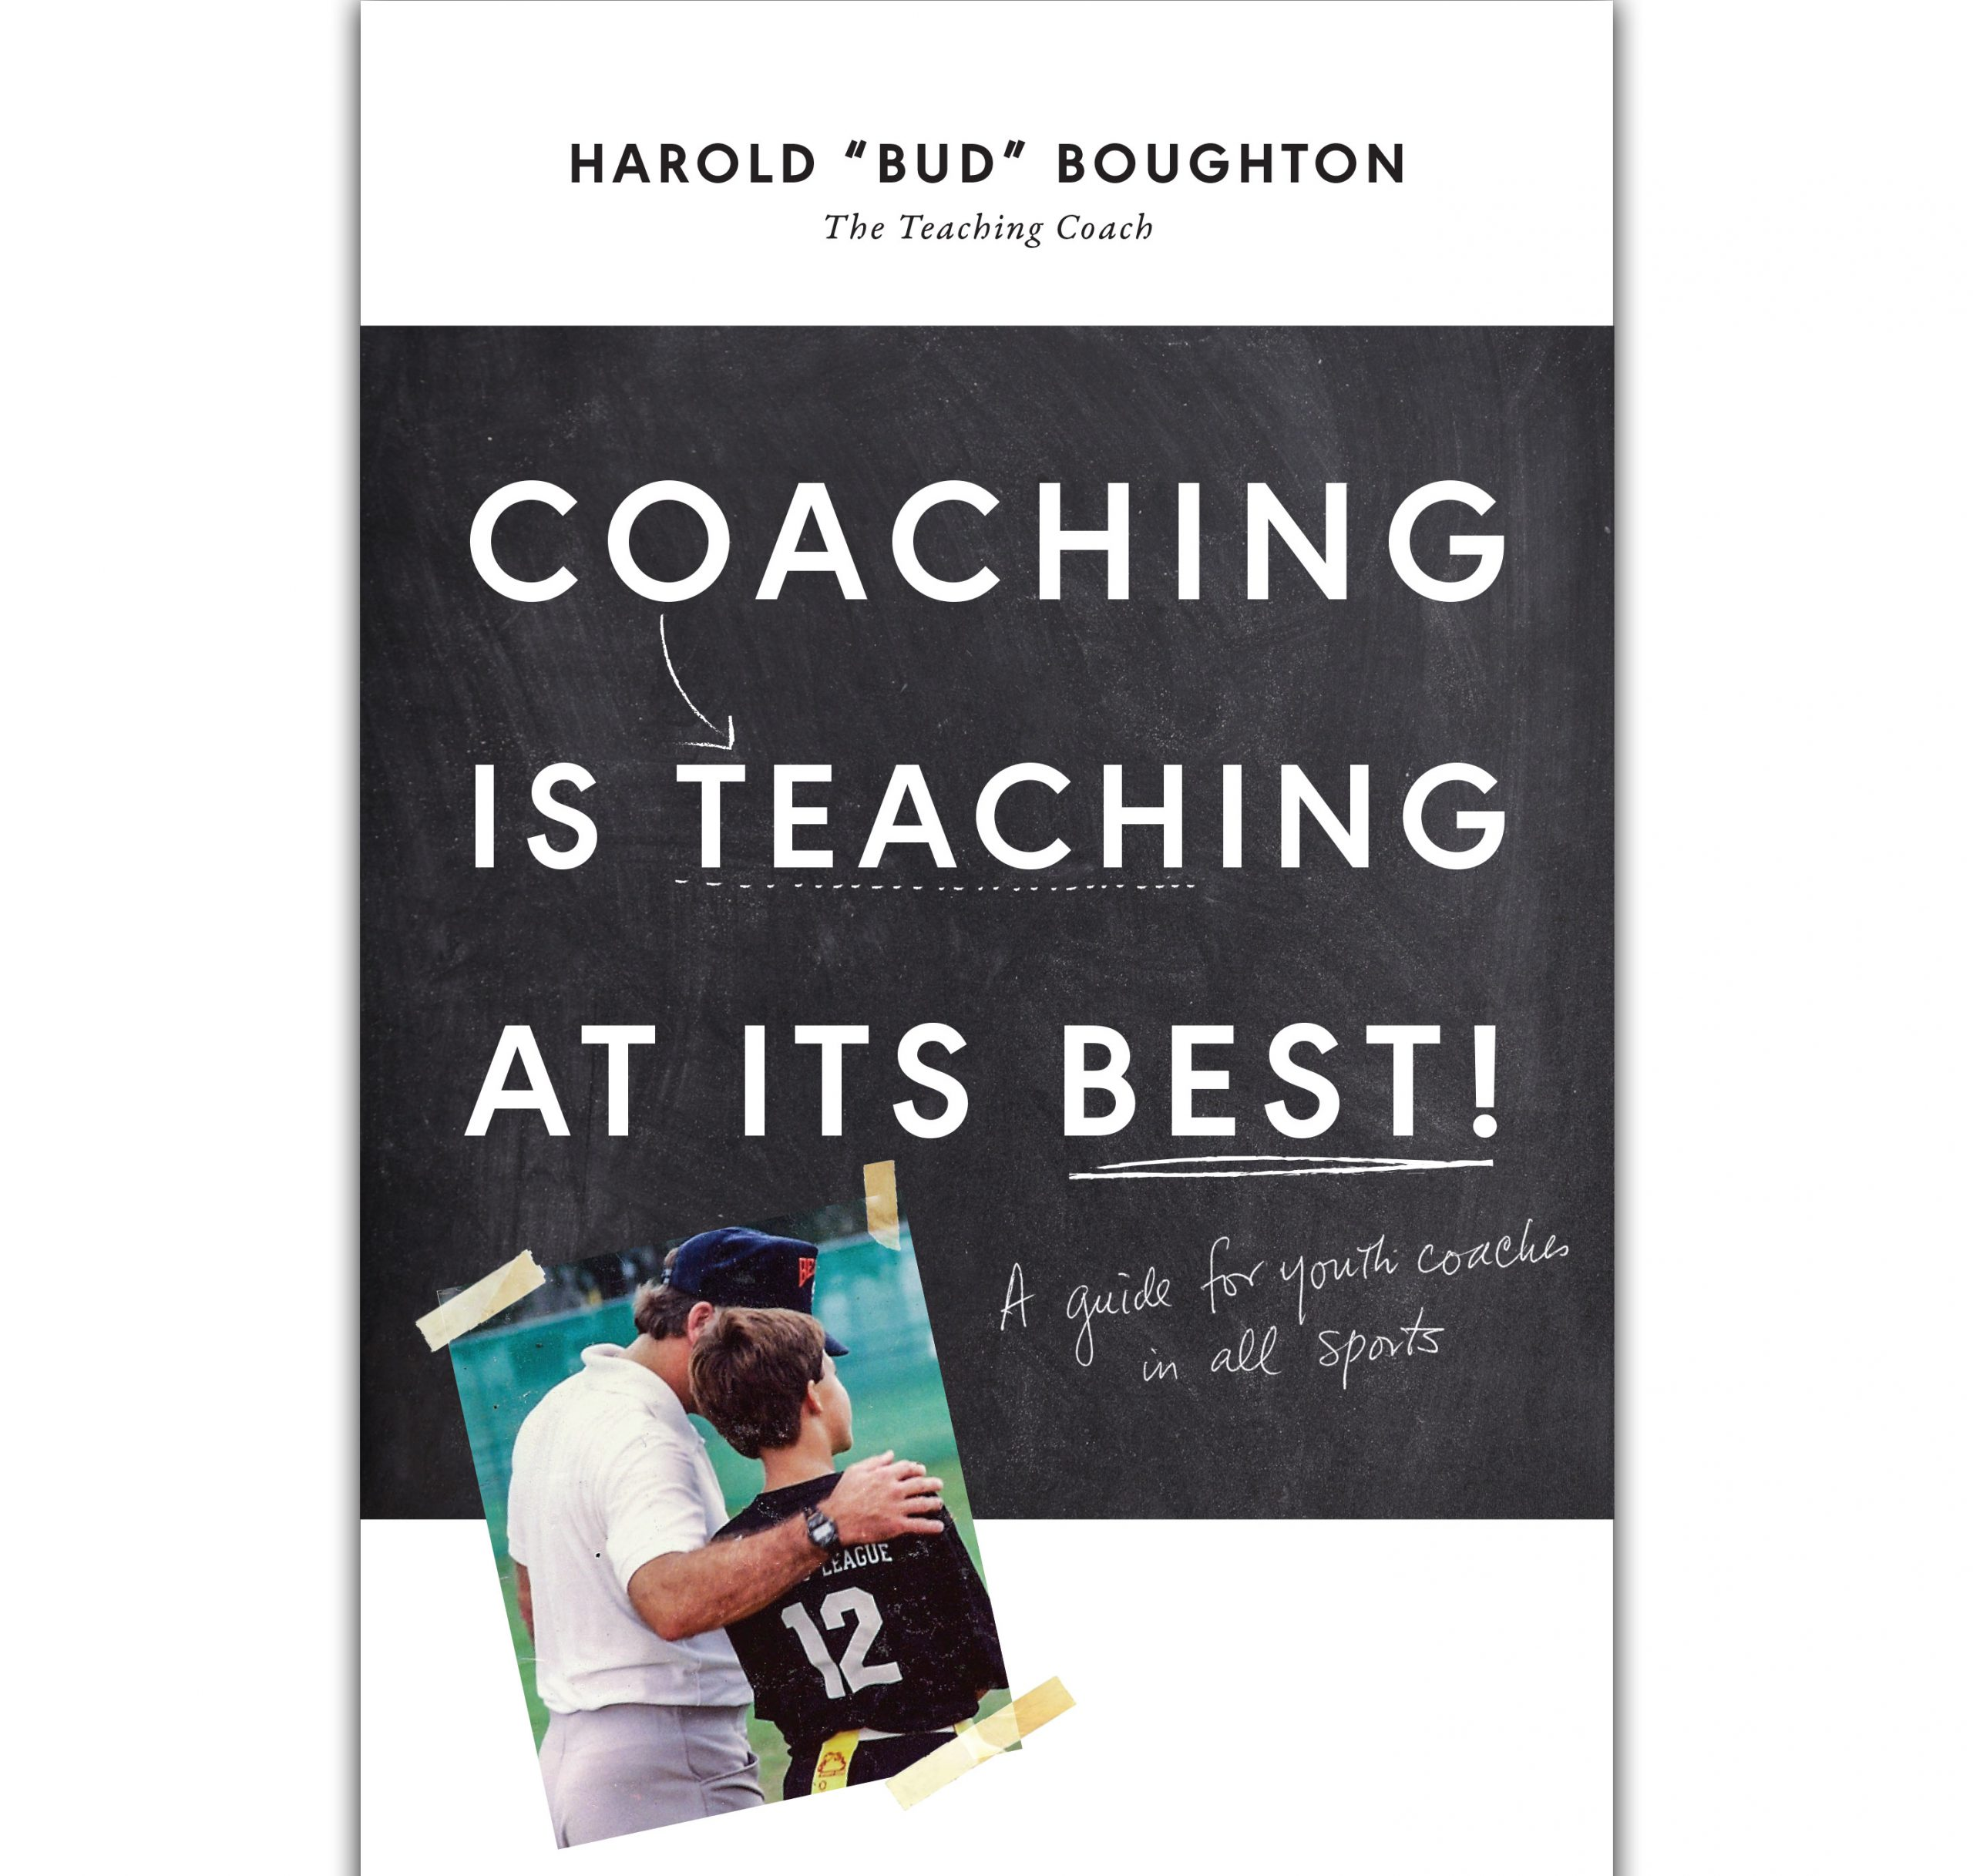 Coaching is Teaching at its Best!